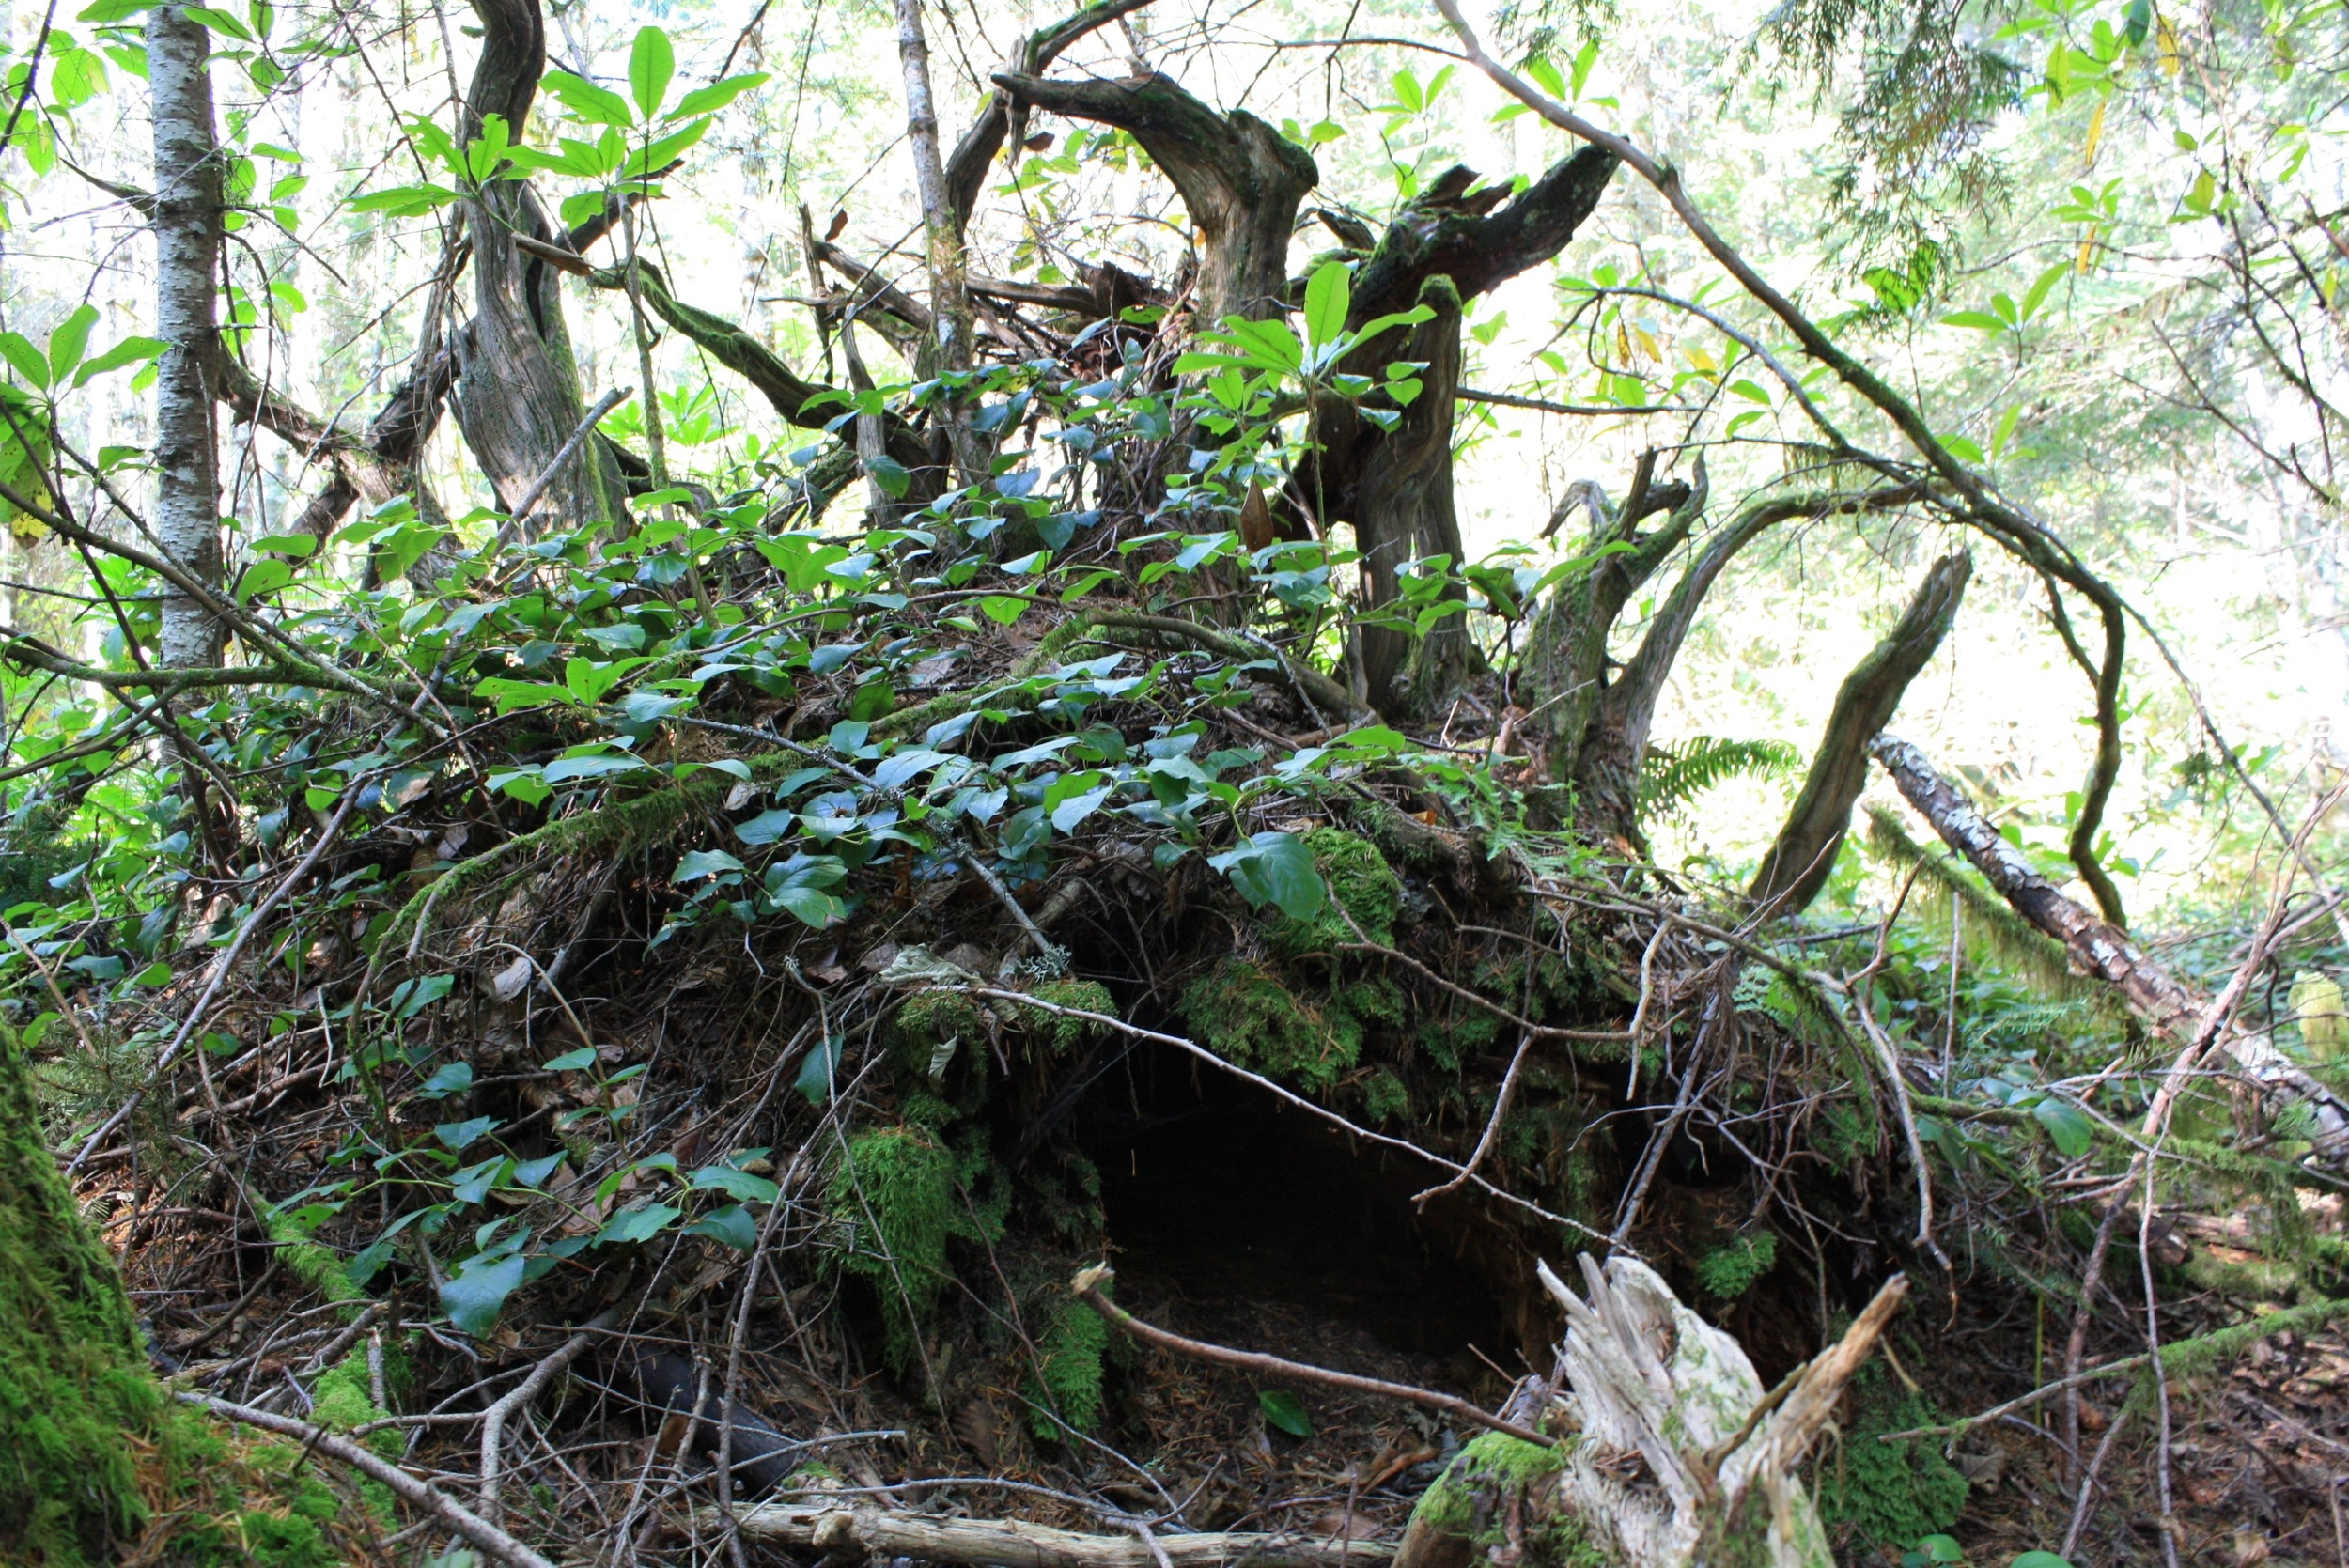 Plants found opportunities everywhere, such as on this uprooted stump